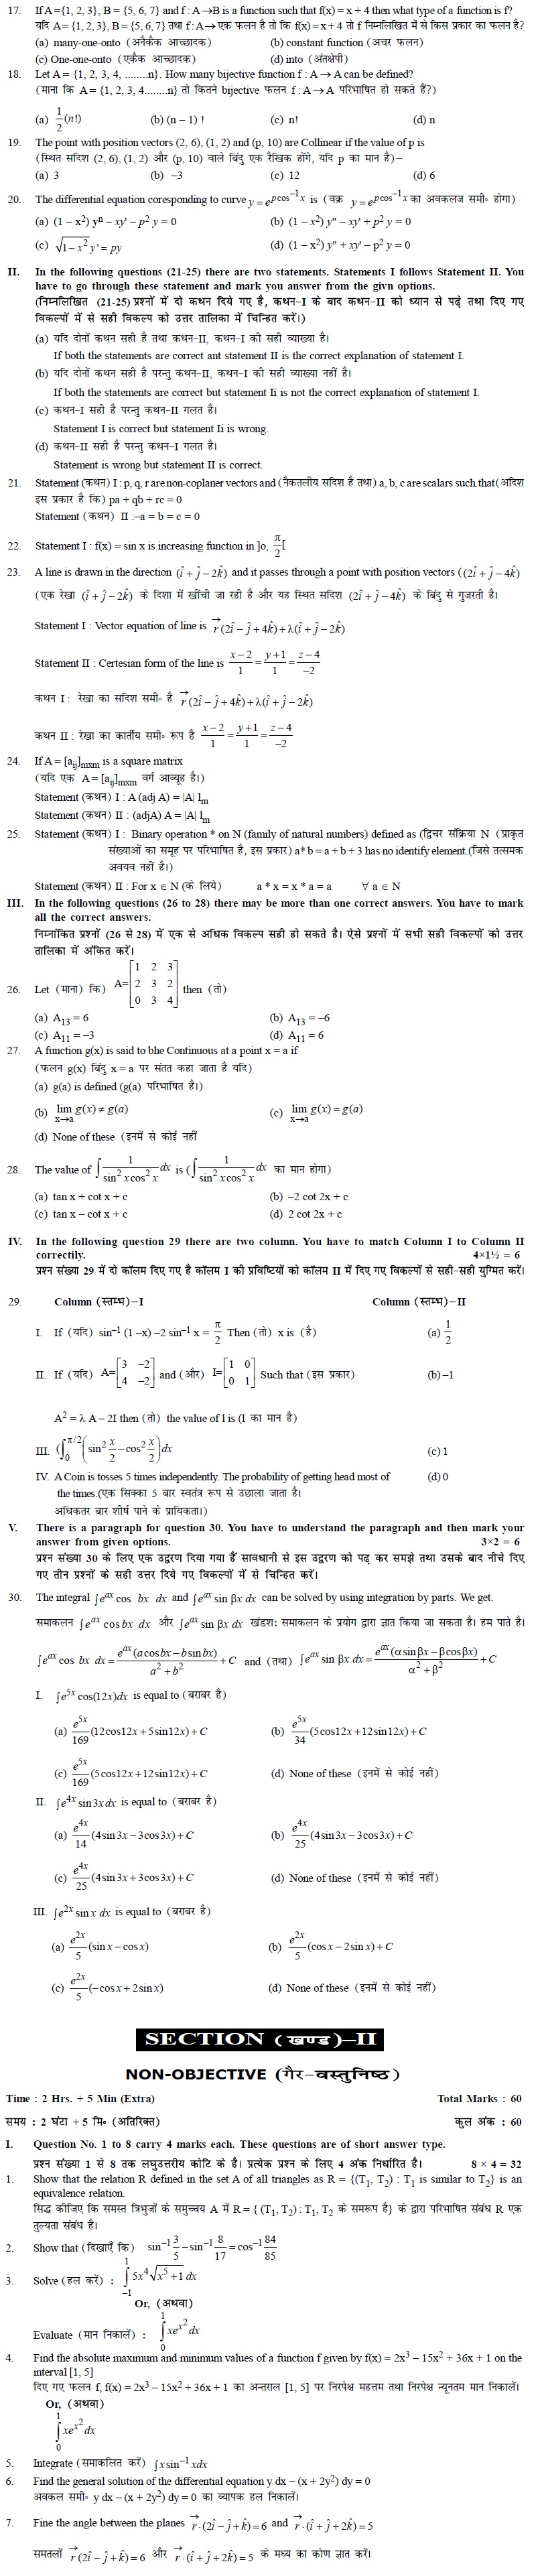 Bihar Board 12th Model Paper Mathematics | BSEB Model Paper With Answer -  AglaSem Schools